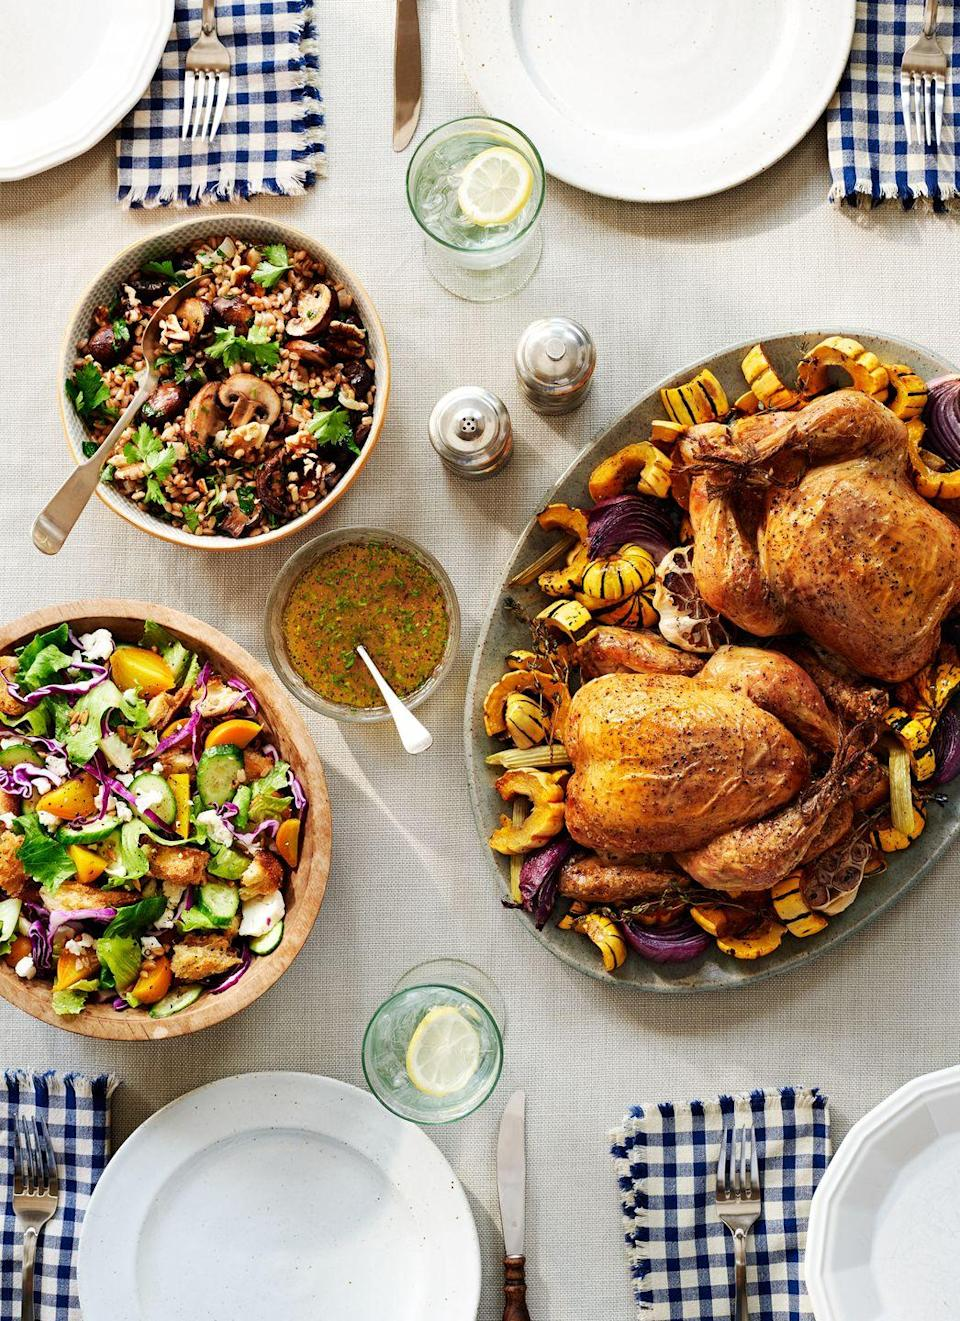 """<p>Golden beets, hearty sourdough bread, cabbage, cucumbers, and more make this veggie medley feastably delicious.</p><p><strong><a href=""""https://www.countryliving.com/food-drinks/recipes/a37296/winter-chopped-salad/"""" rel=""""nofollow noopener"""" target=""""_blank"""" data-ylk=""""slk:Get the recipe"""" class=""""link rapid-noclick-resp"""">Get the recipe</a>.</strong></p><p><strong><a class=""""link rapid-noclick-resp"""" href=""""https://www.amazon.com/Lipper-International-Finished-Serving-3-Piece/dp/B000XSG3EQ/?tag=syn-yahoo-20&ascsubtag=%5Bartid%7C10050.g.34063059%5Bsrc%7Cyahoo-us"""" rel=""""nofollow noopener"""" target=""""_blank"""" data-ylk=""""slk:SHOP SALAD BOWLS"""">SHOP SALAD BOWLS</a><br></strong></p>"""